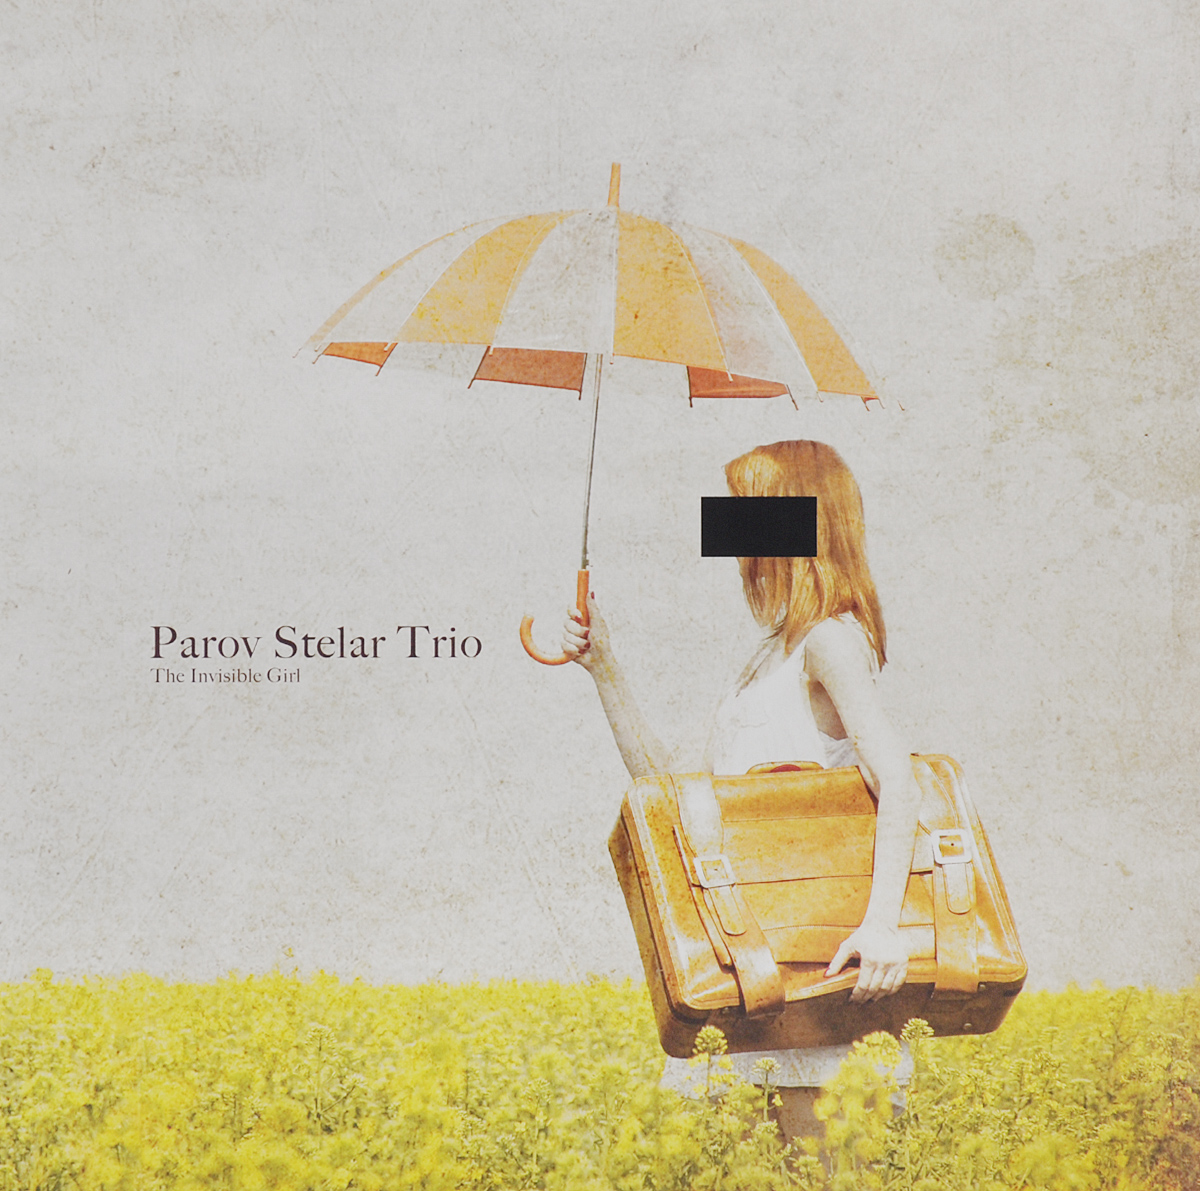 Parov Stelar Trio Parov Stelar Trio. The Invisible Girl (LP) port noir port noir   any way the wind carries  2 lp